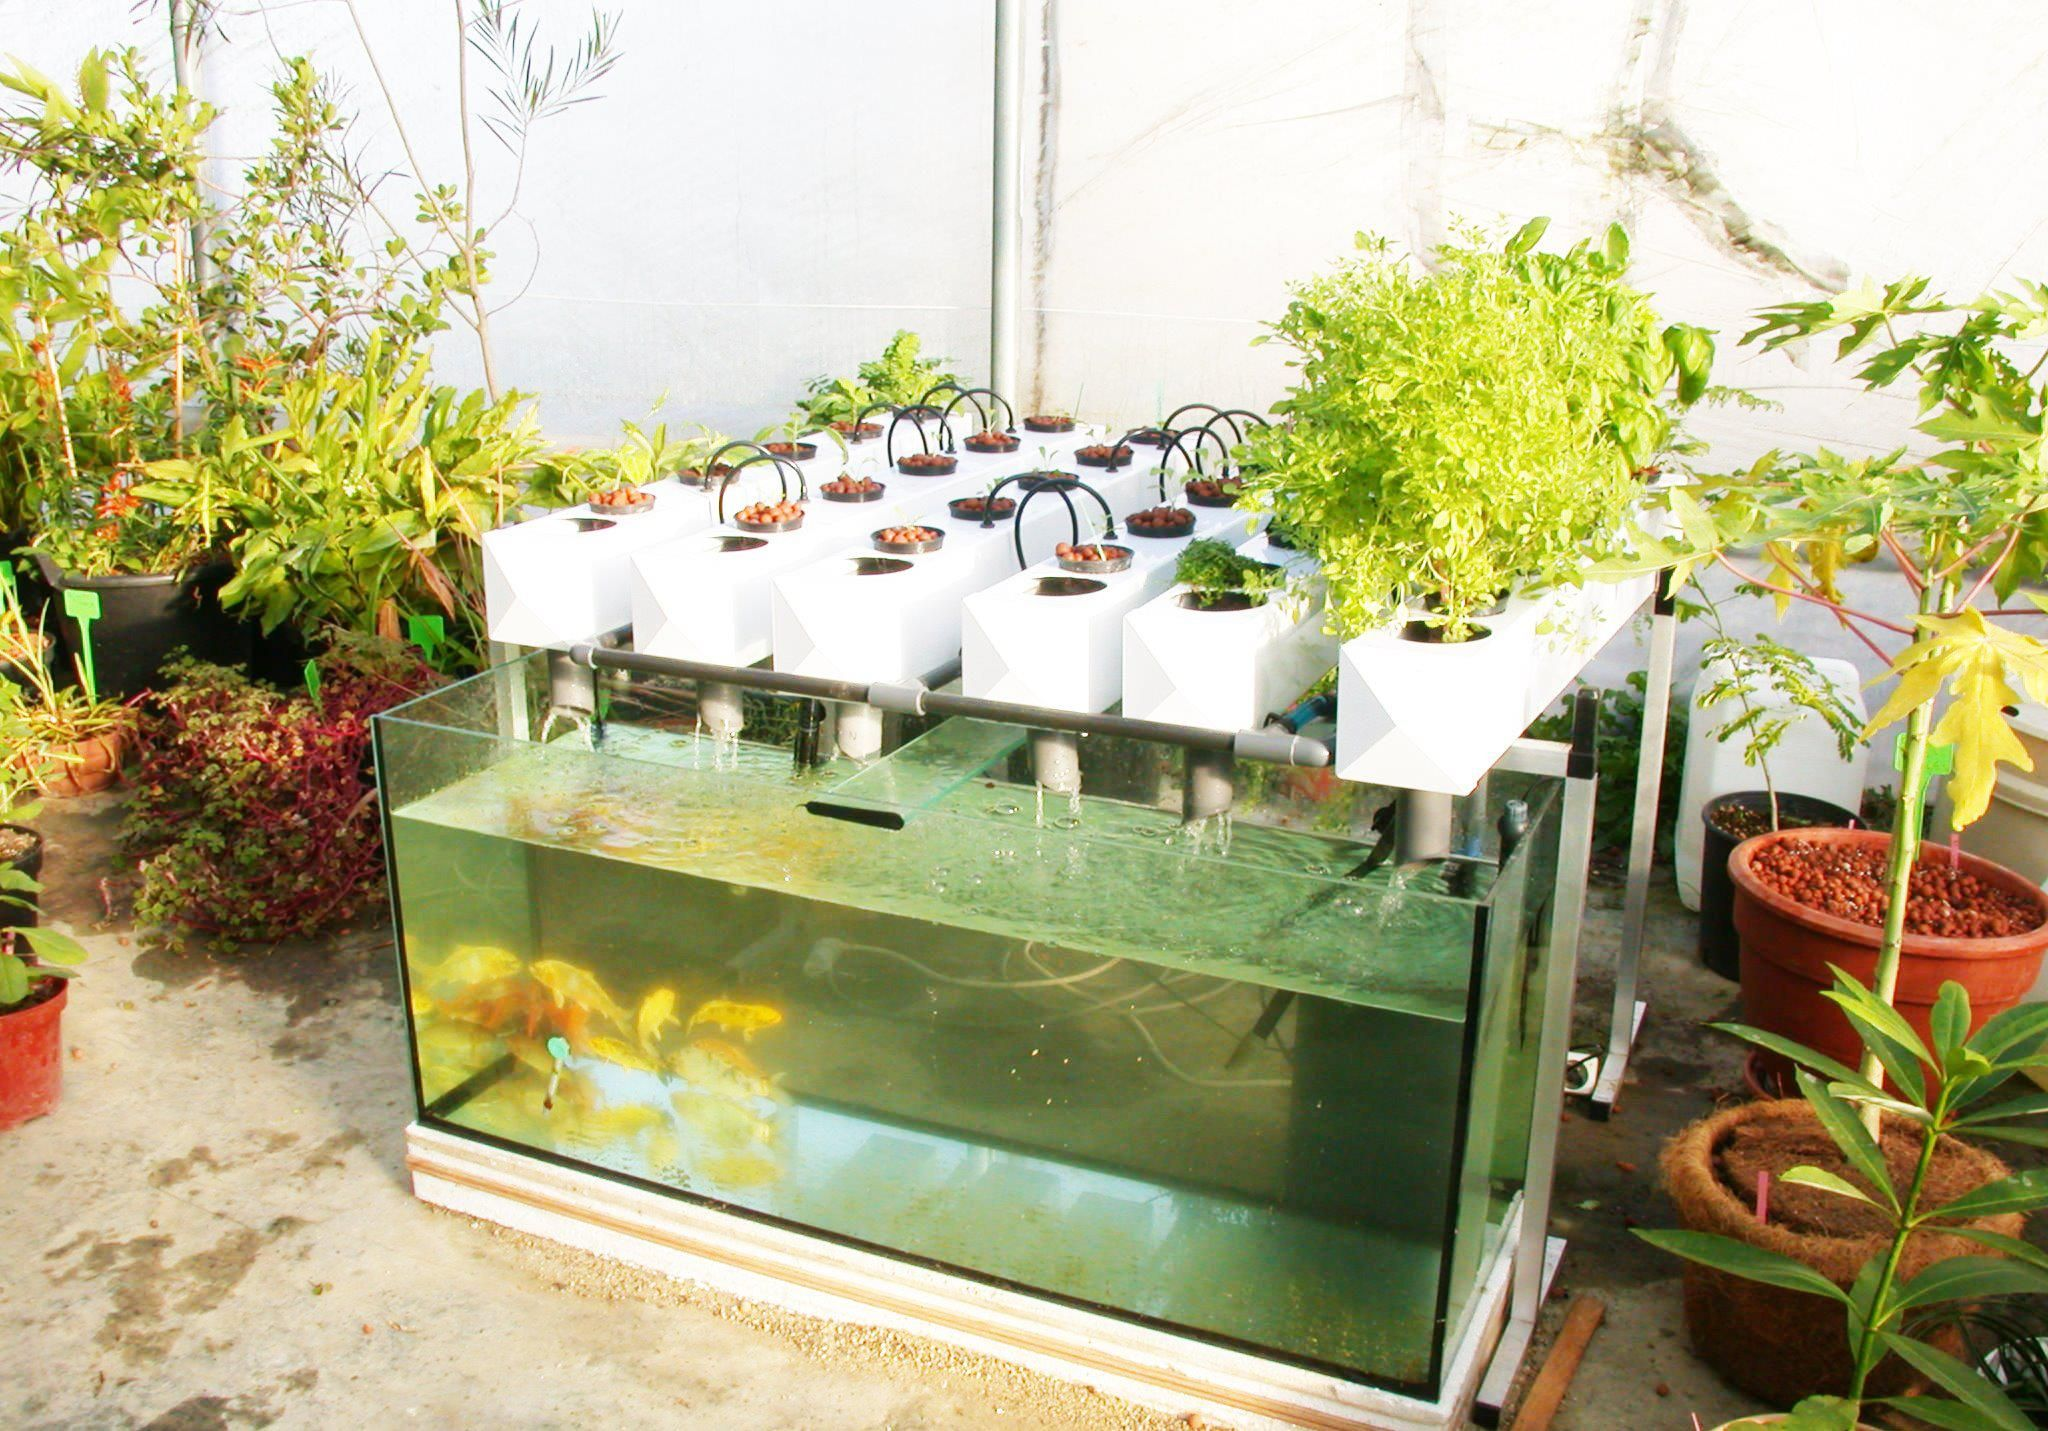 aquaponics systems grow food and fish at the sme time in a